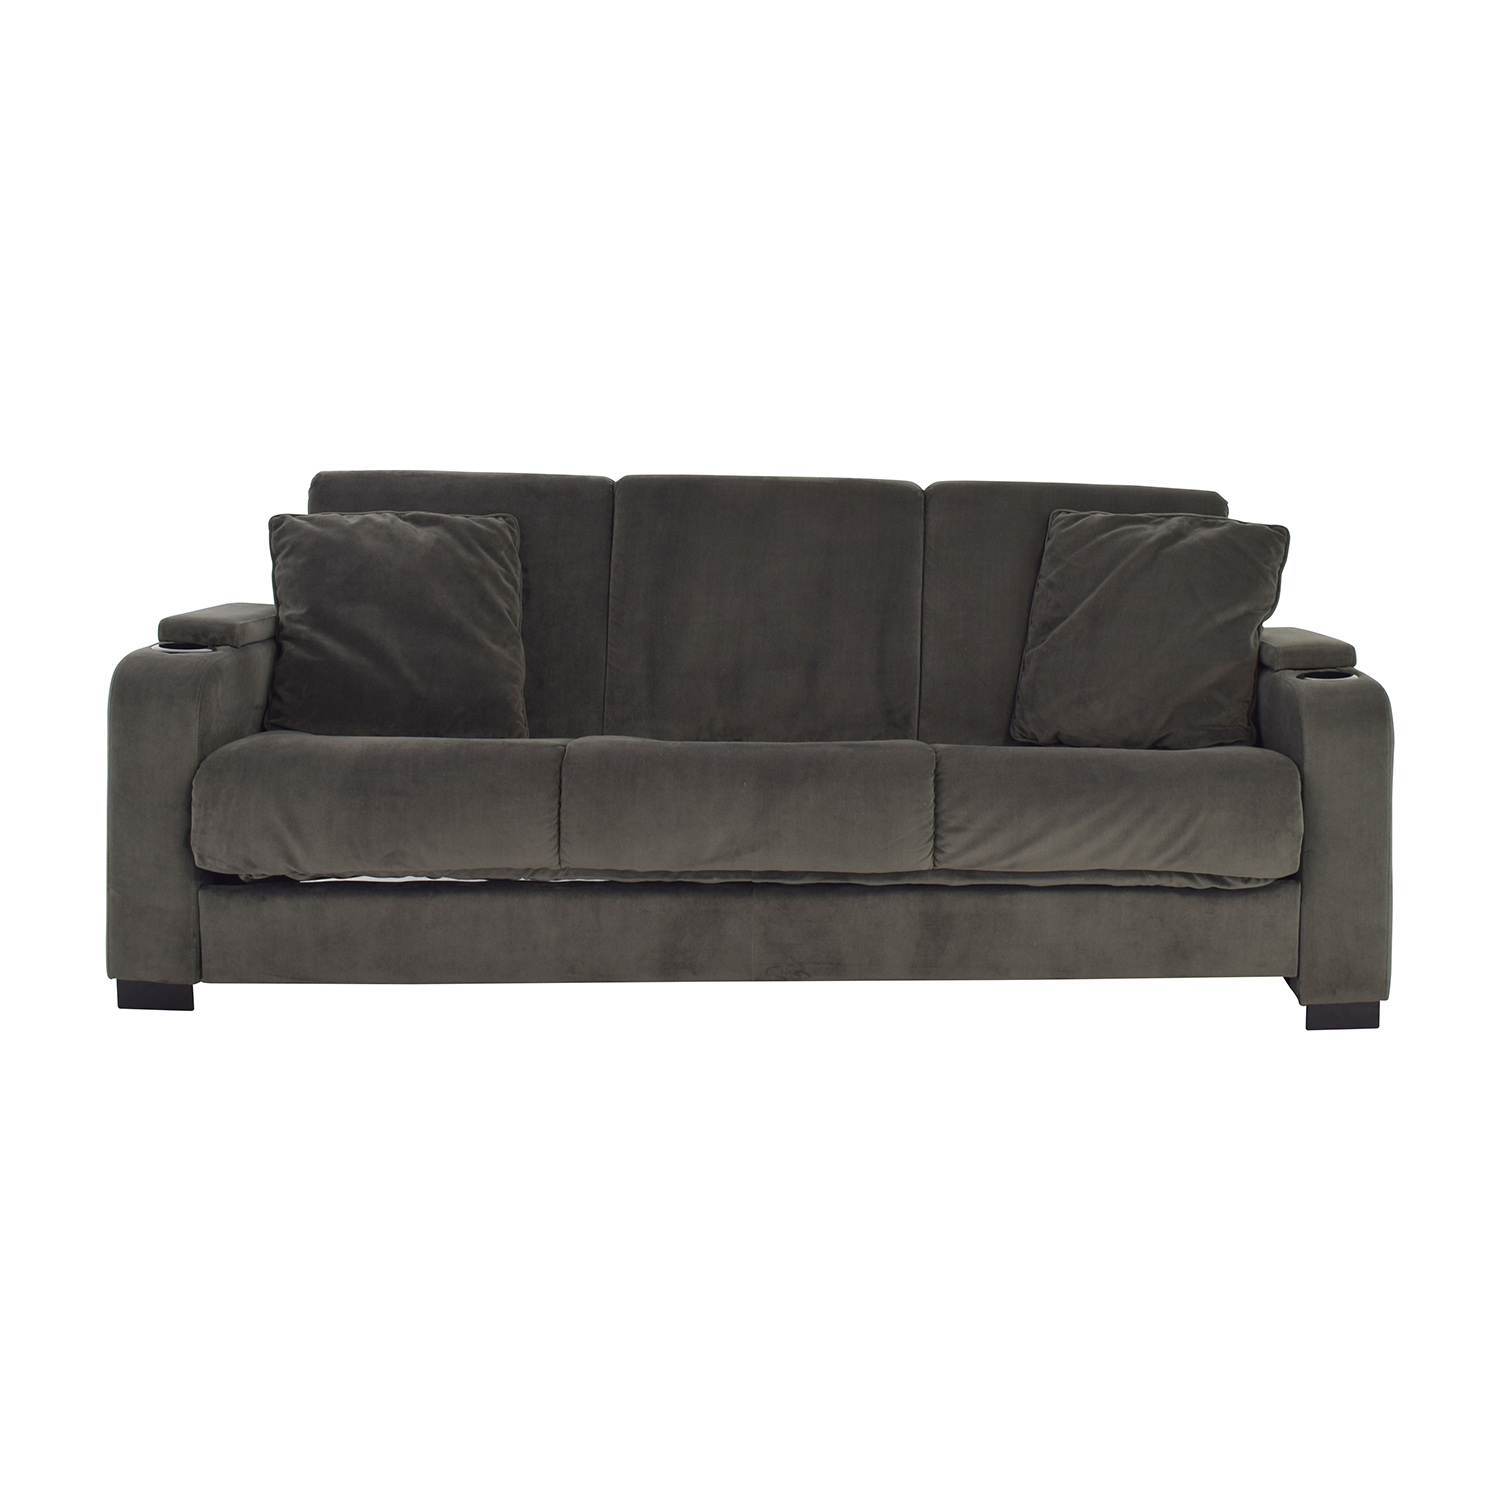 Handy Living Handy Living Olivia Convert-a-Couch Sleeper Sofa second hand